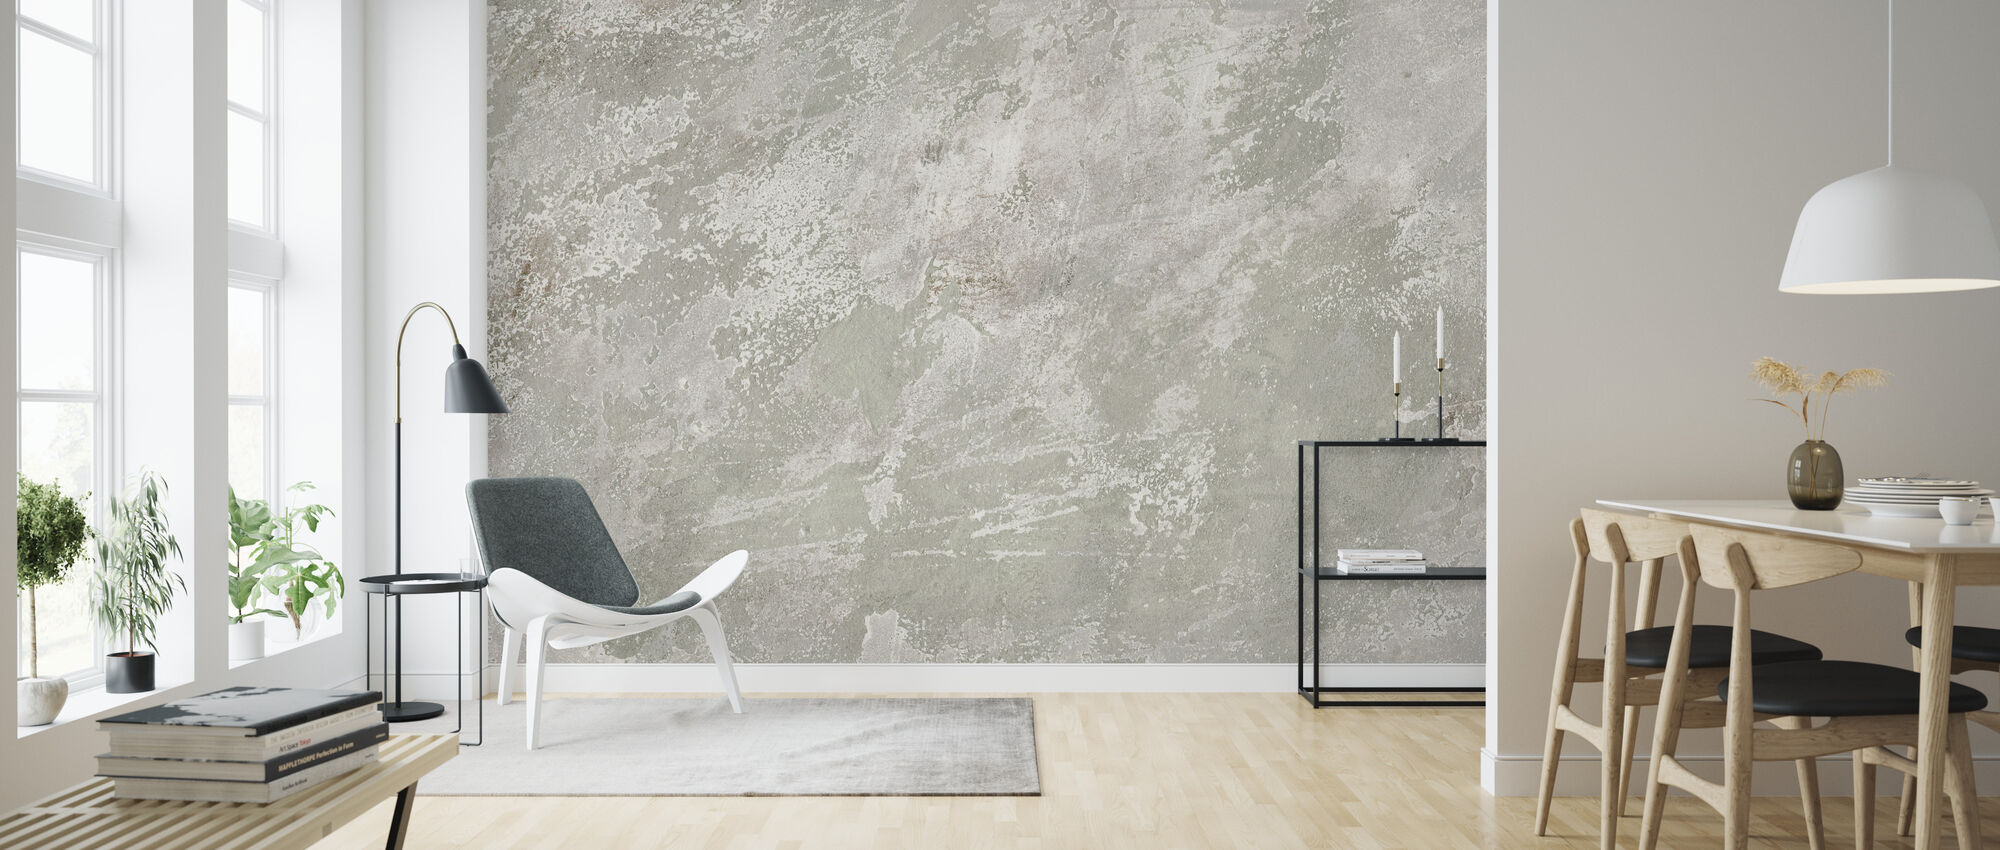 White Washed Stone Wall - Wallpaper - Living Room